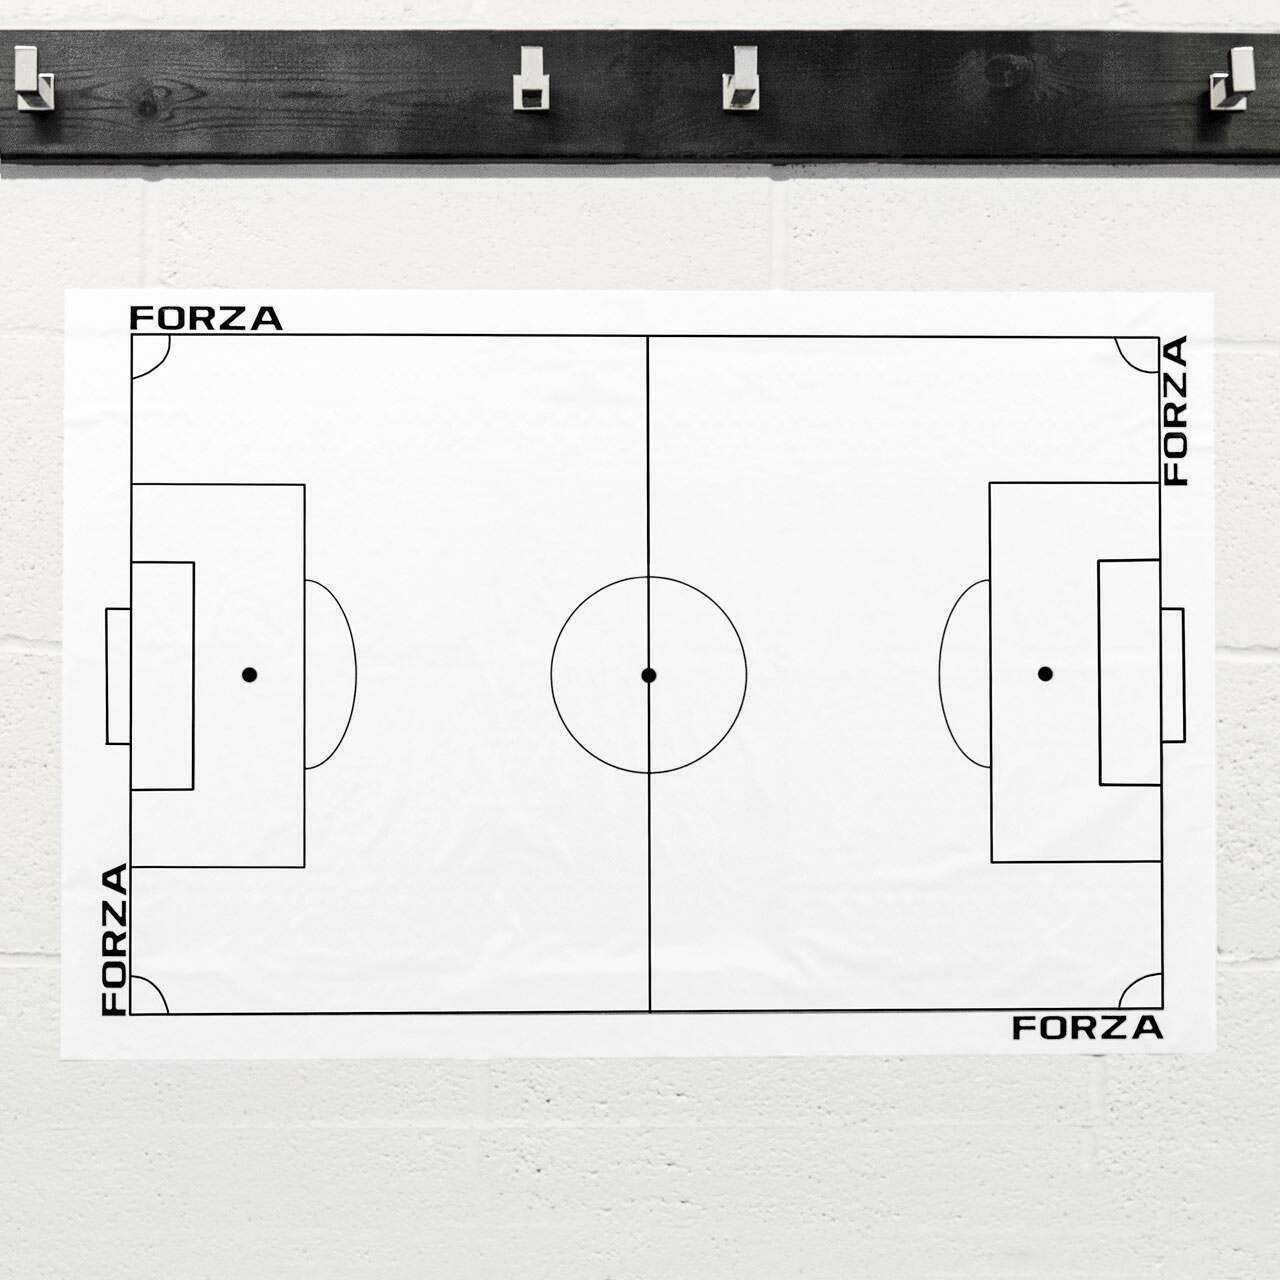 FORZA Adhesive Football Tactics Sheet